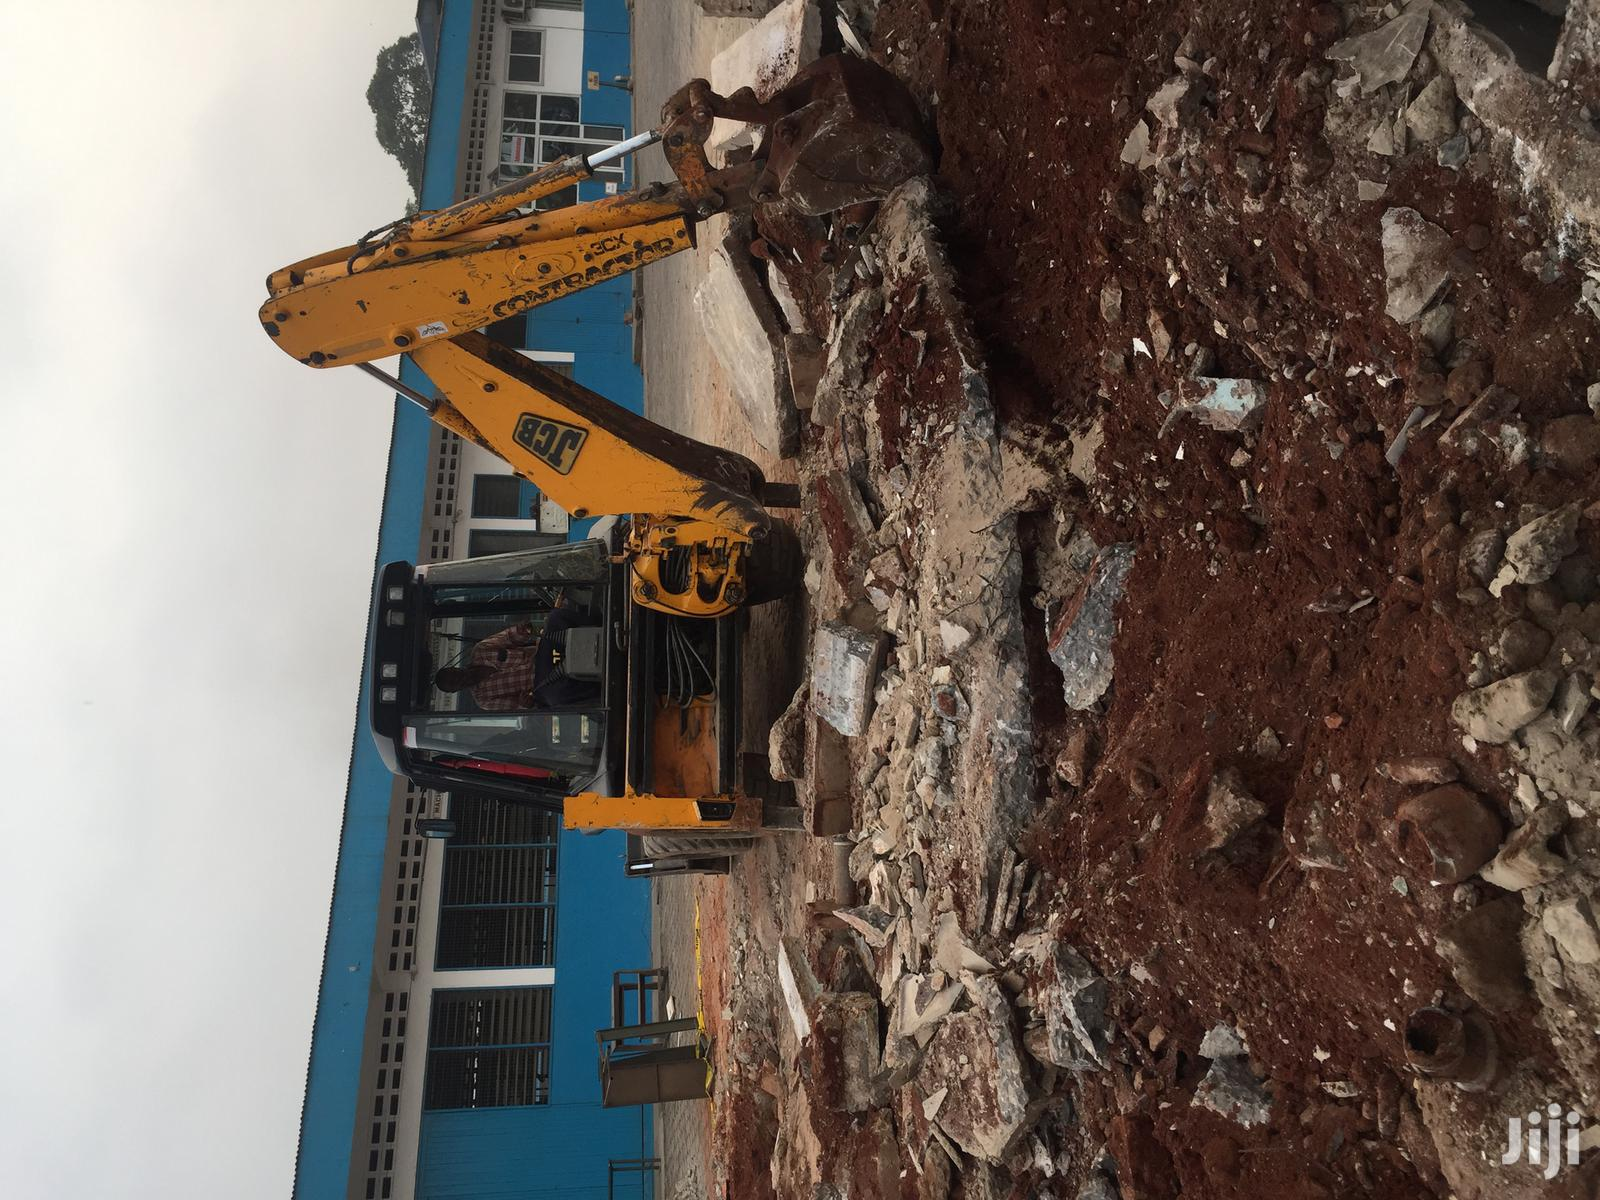 Backhoe For Hiring | Automotive Services for sale in Accra Metropolitan, Greater Accra, Ghana